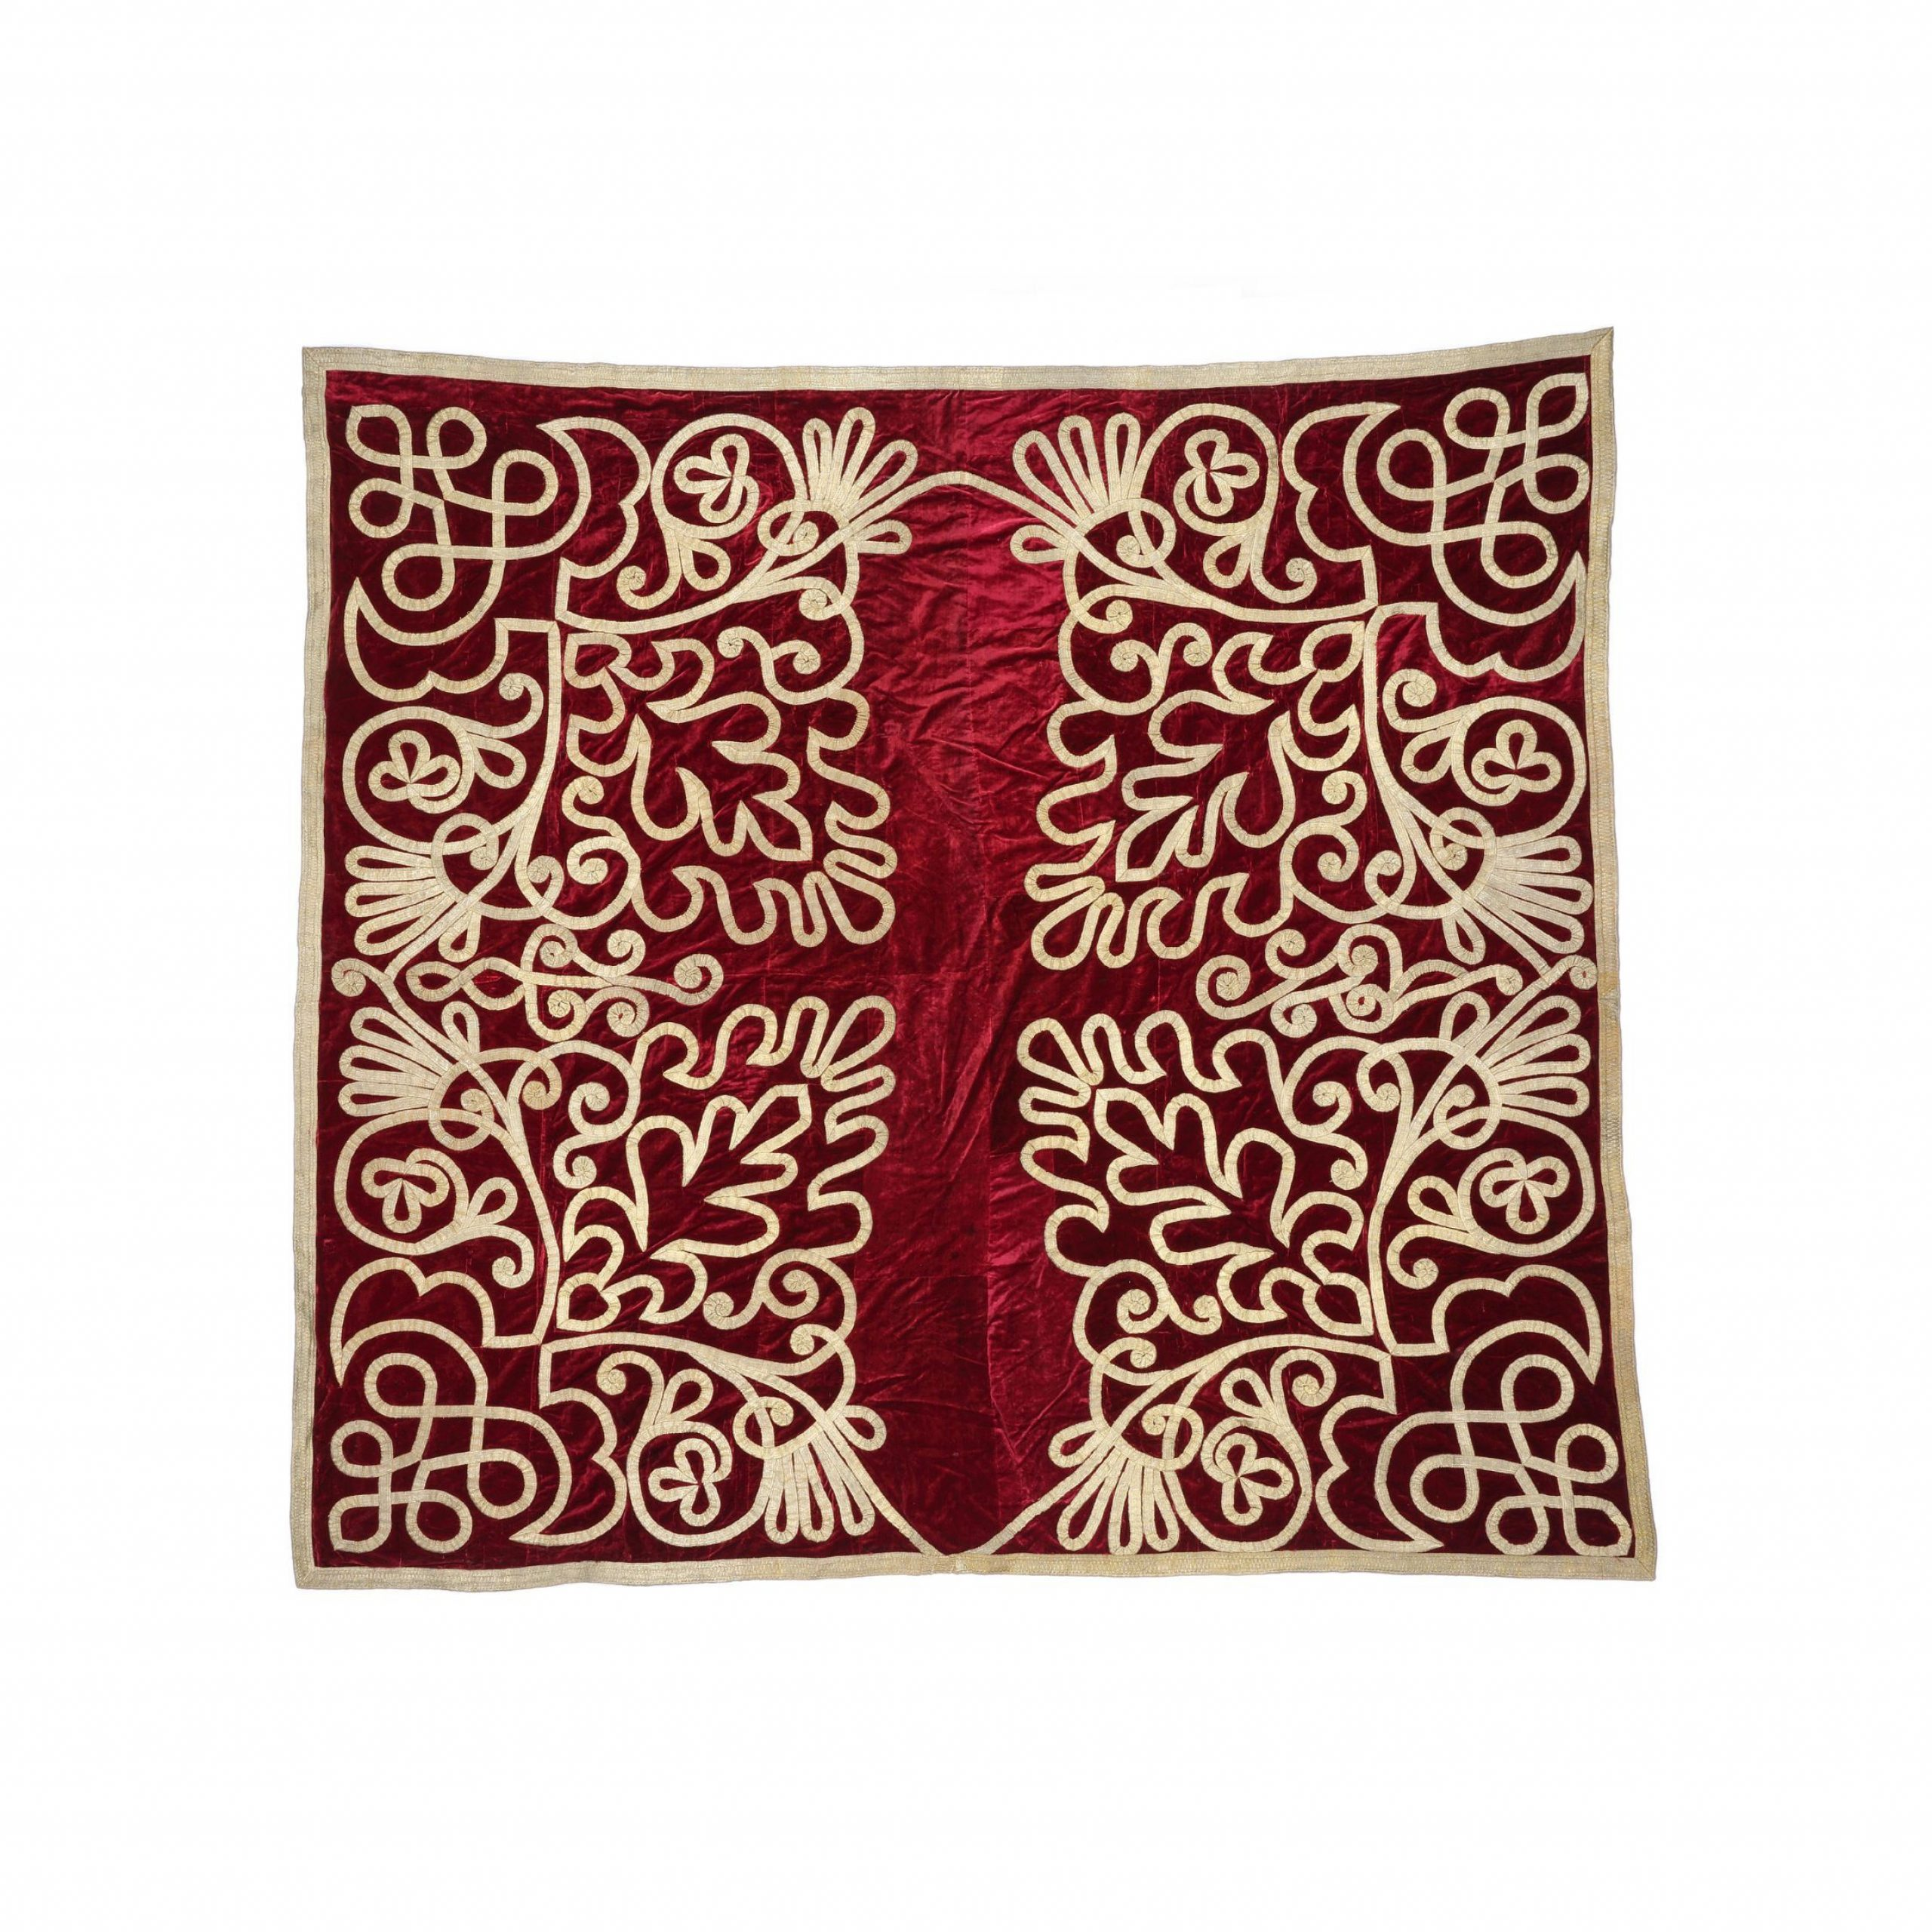 19th Century Scarlet Velvet Wall Hanging Throughout 2018 Blended Fabric Italian Wall Hangings (View 18 of 20)